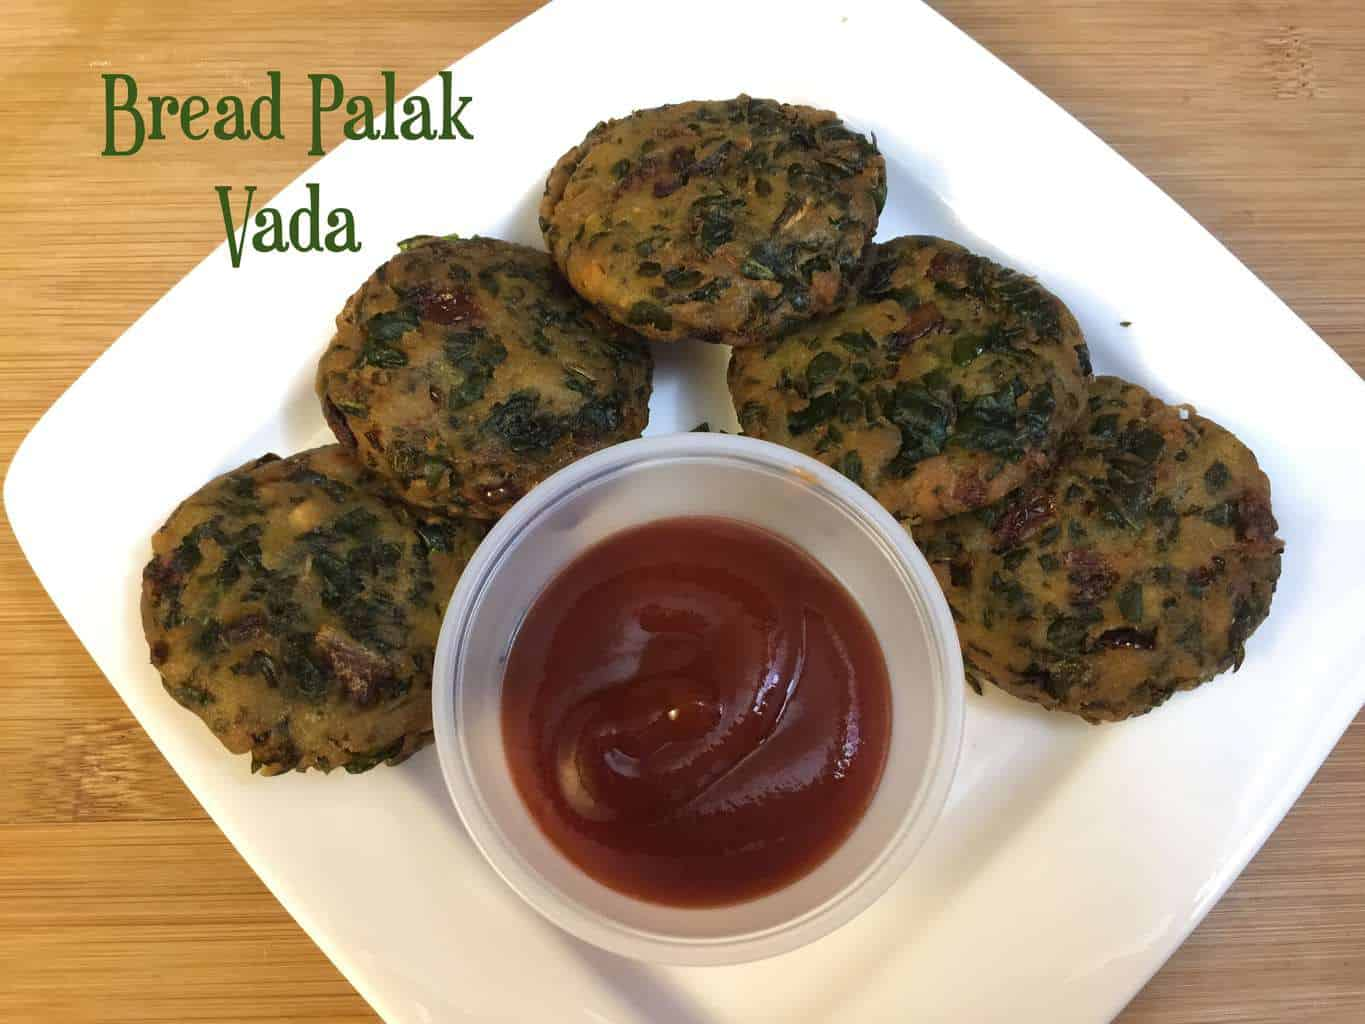 Bread Palak Vada Recipe served on a plate with tomato ketchup on the side